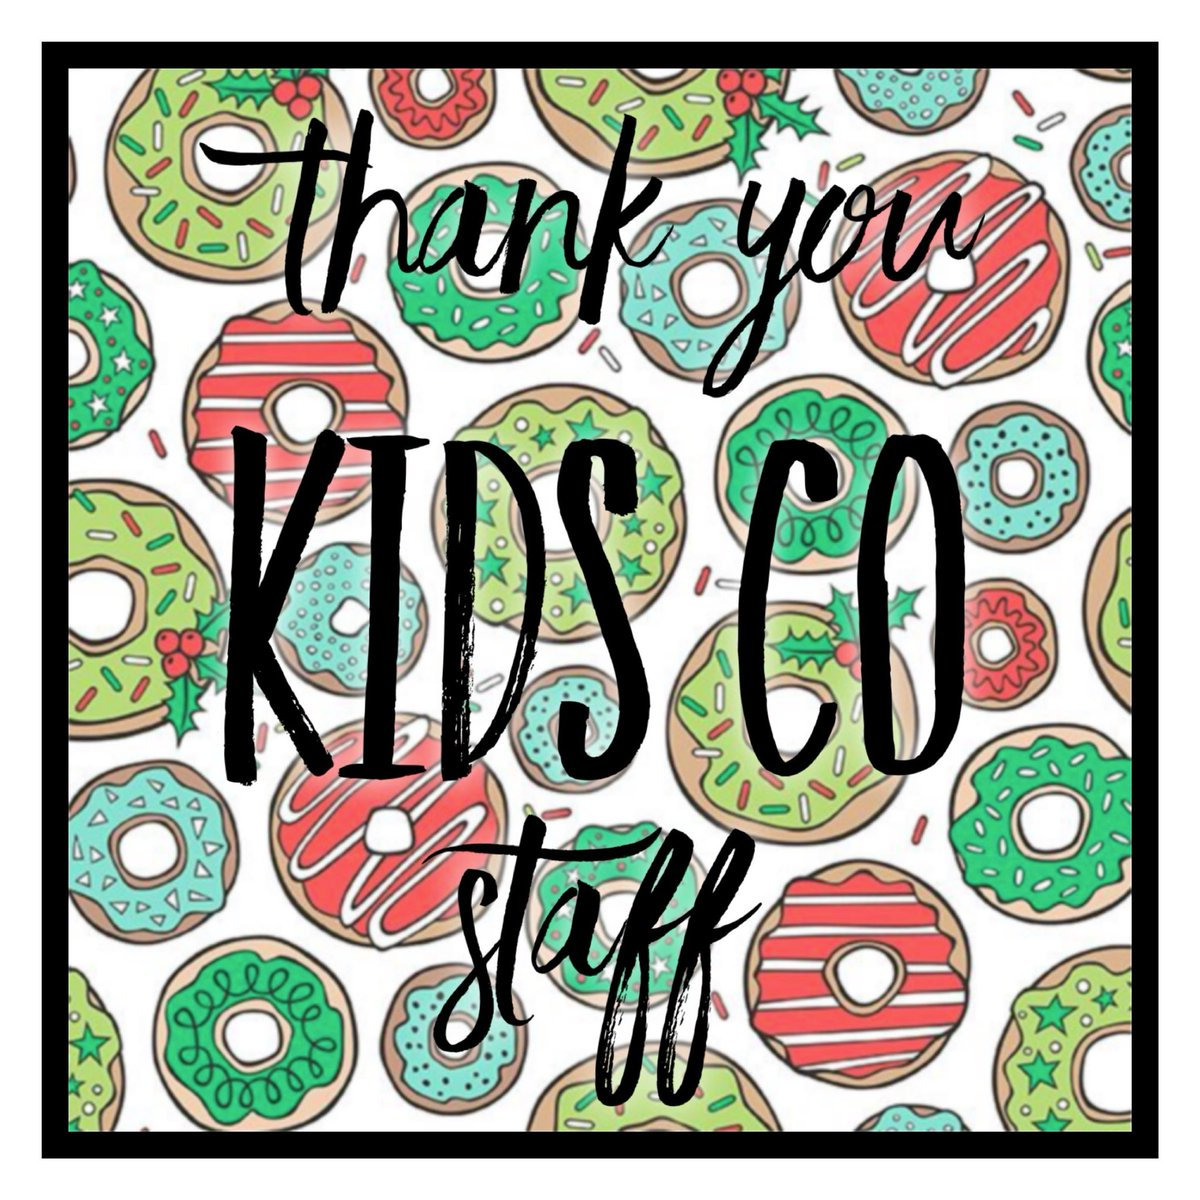 Donuts were delivered today to Kids Co staff  around the district on behalf of PLSEA as a thank you for all the work they have been doing this year, especially during distance learning! Kids Co staff, you are greatly appreciated! #TogetherWeWork #amazingstaff